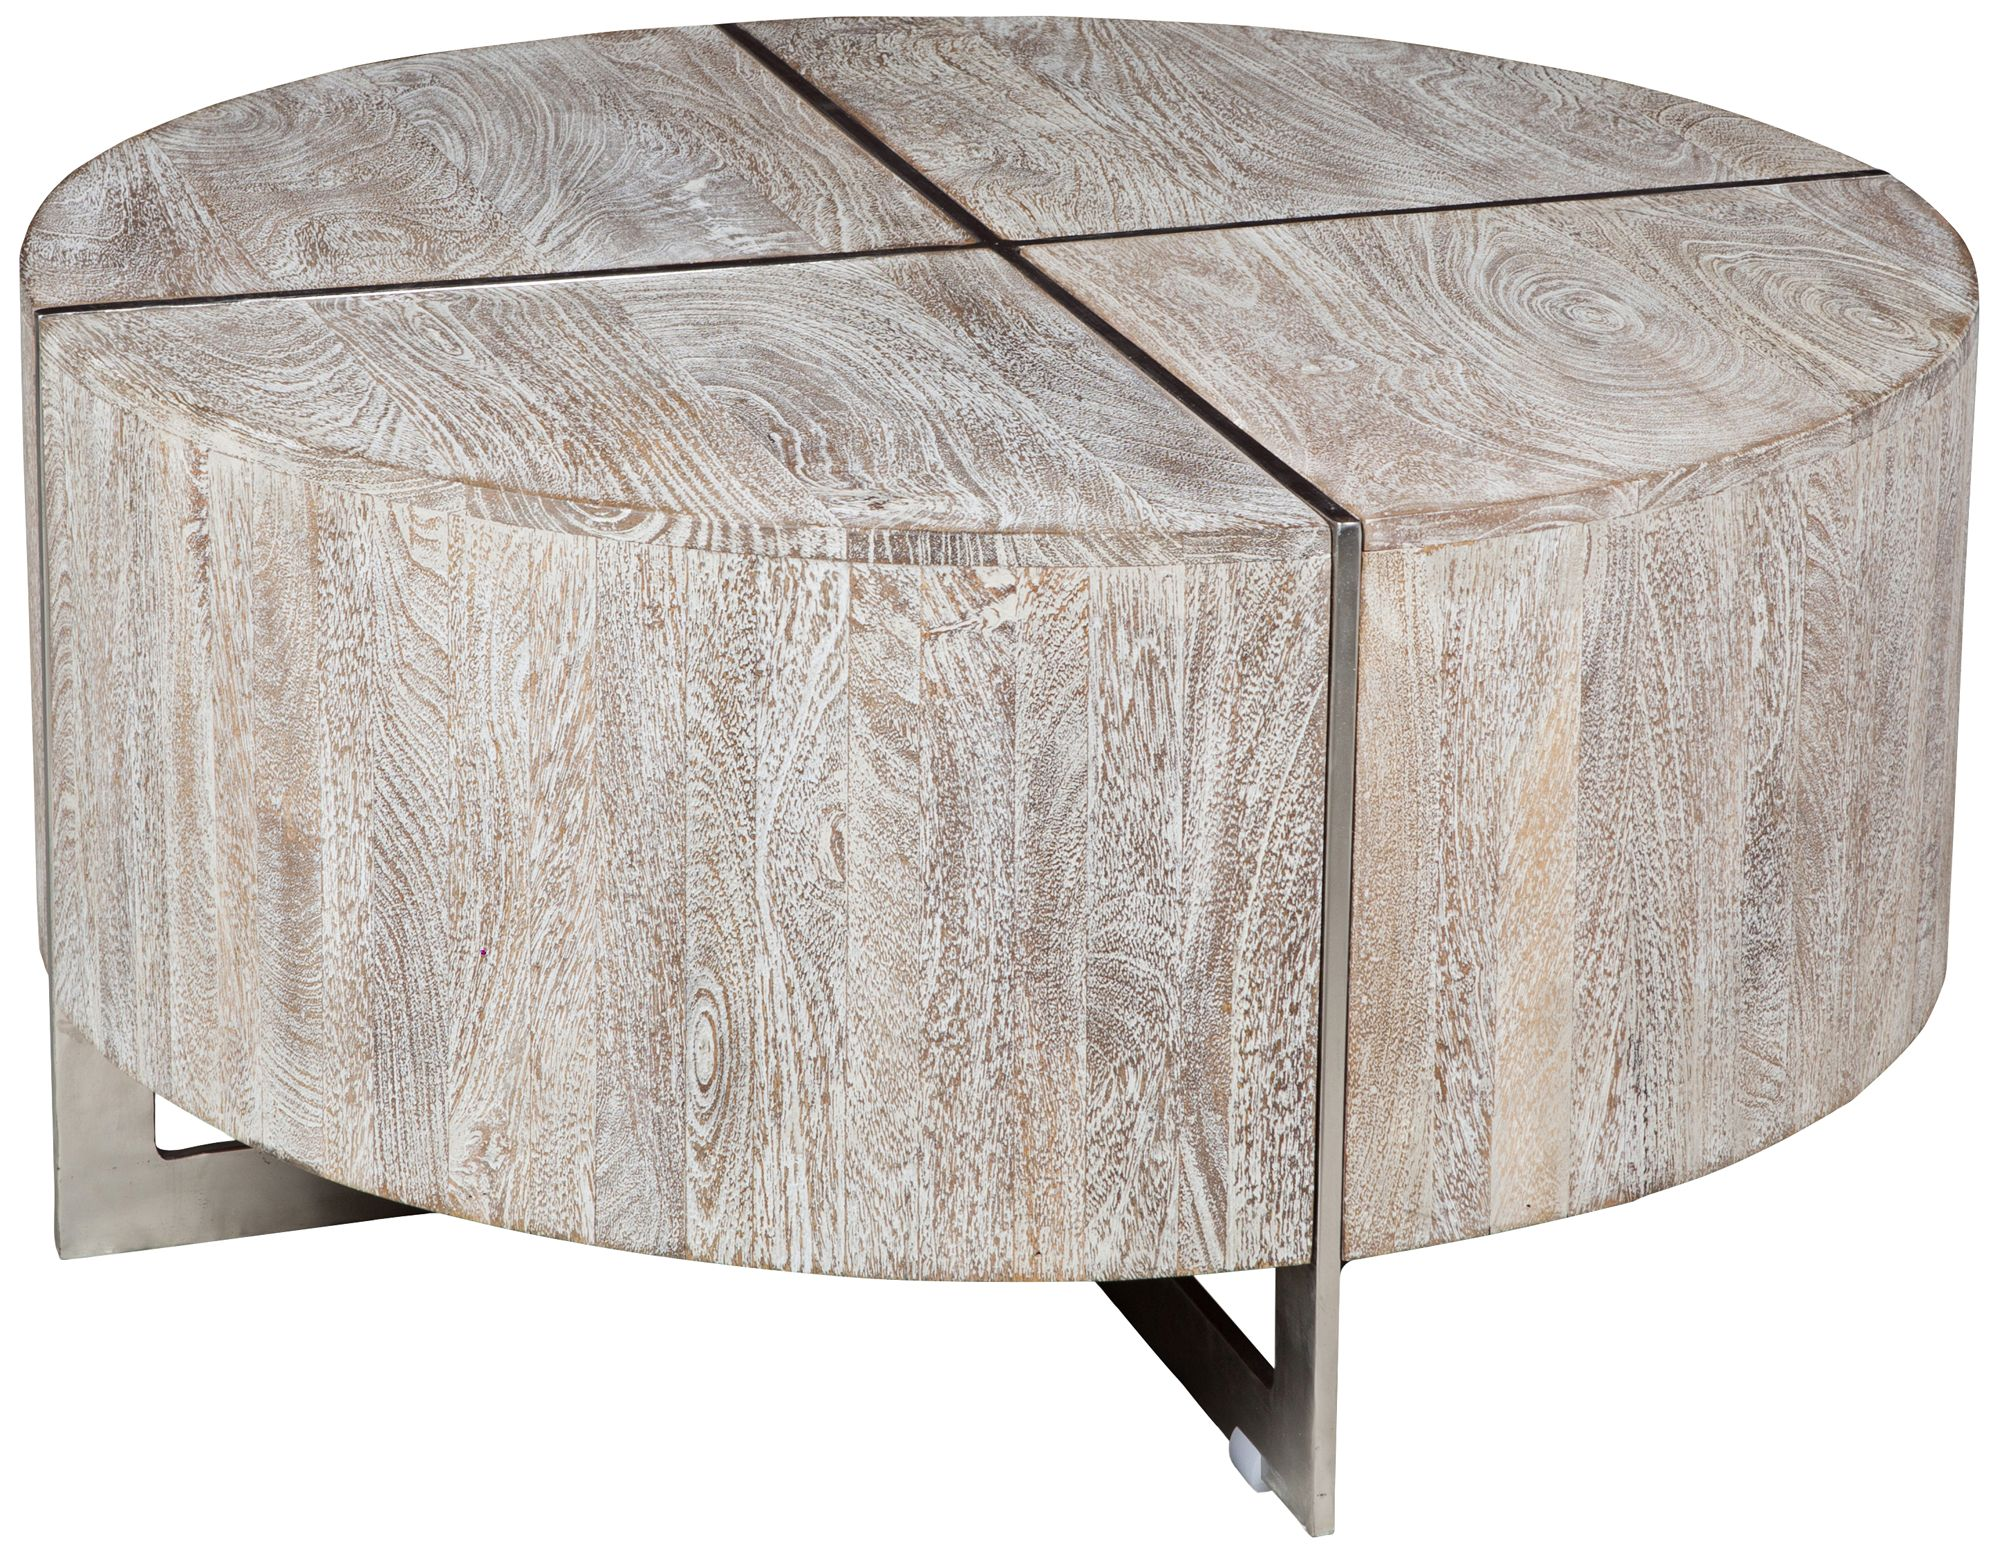 Desmond Hand Distressed Wood Round Coffee Table